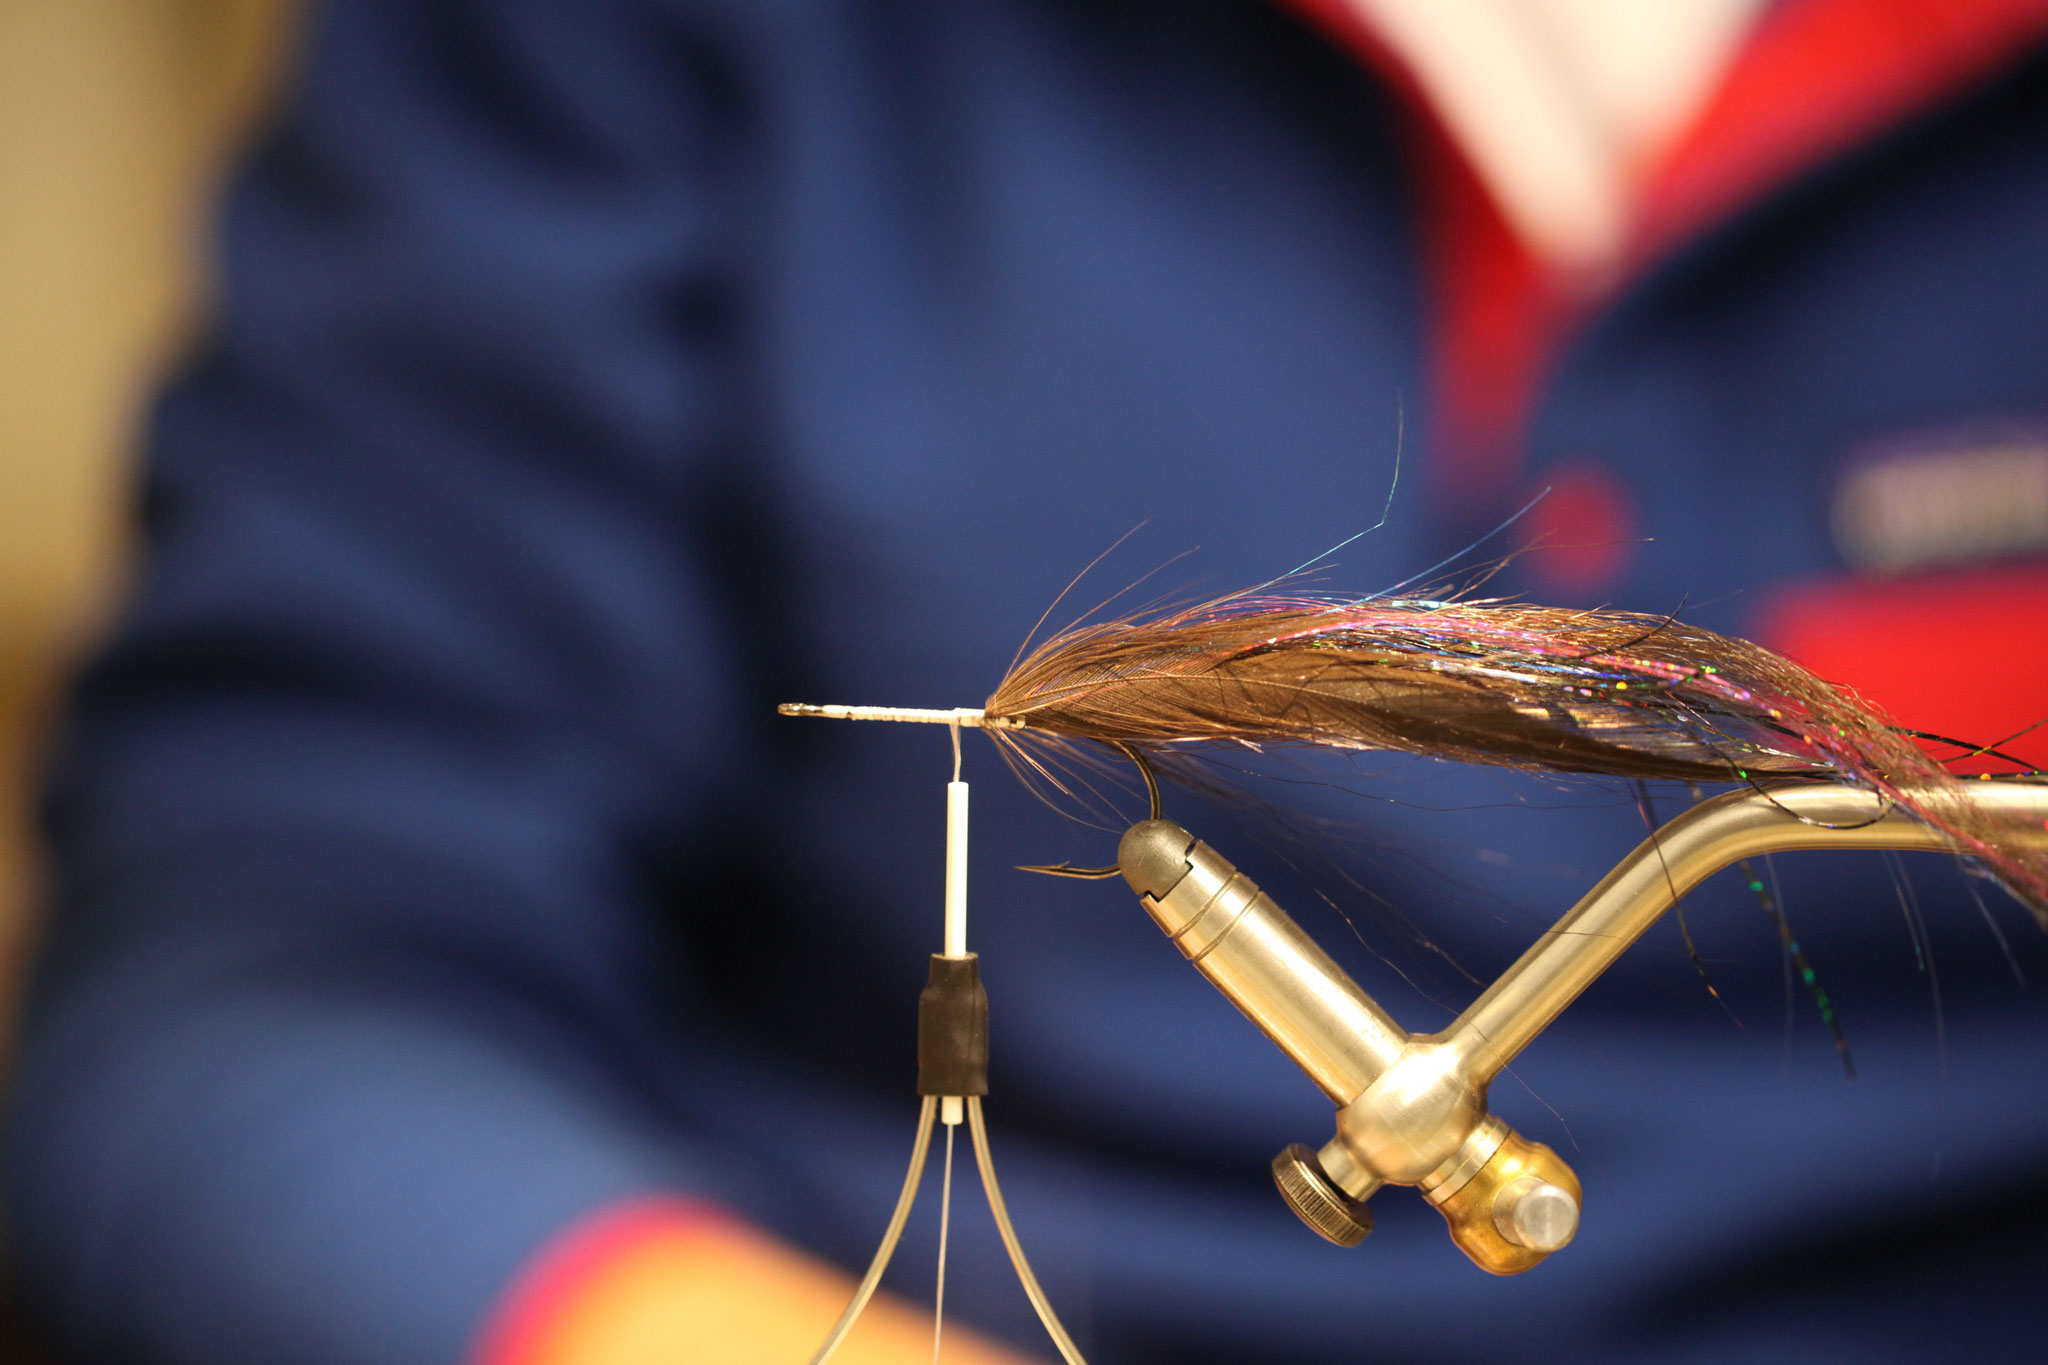 Tie in one hackle feather on each side